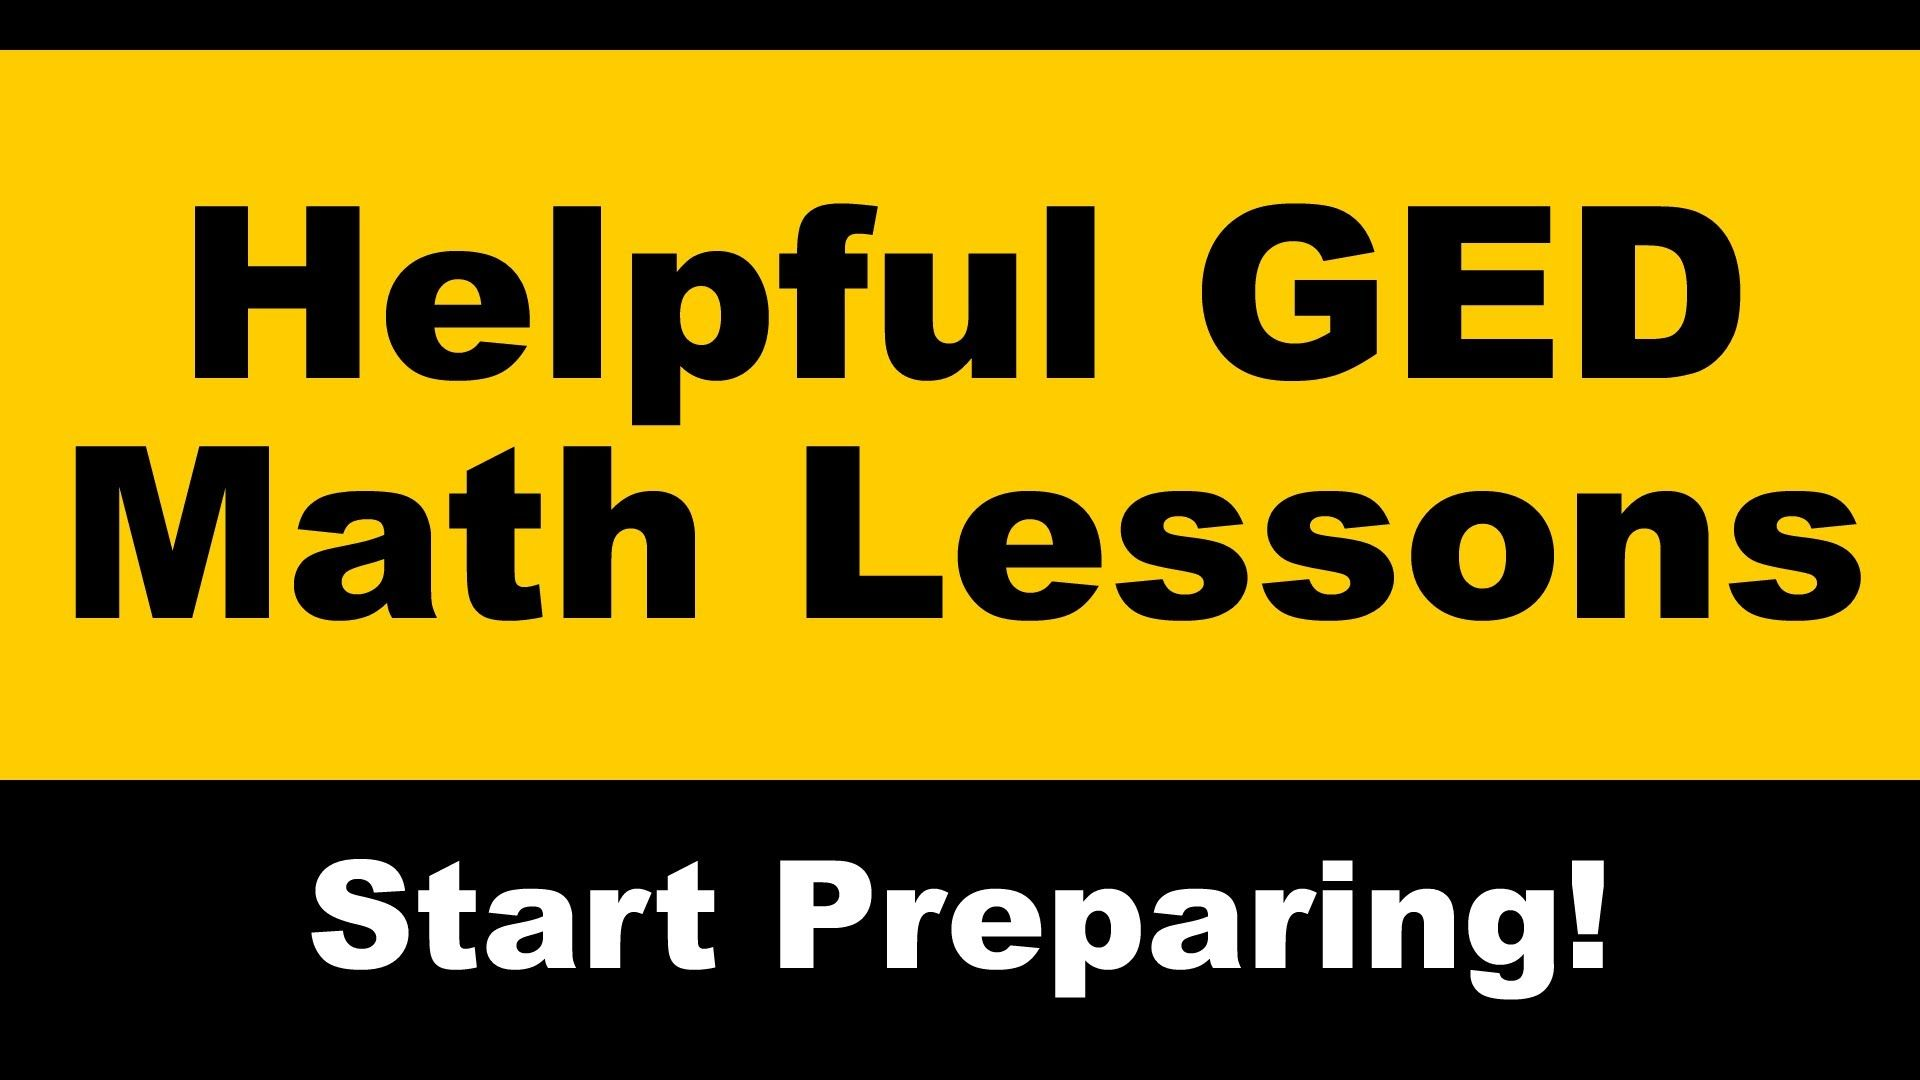 Finding The Right Ged Math Lessons To Prep For The Ged Is Essential These Ged Test Answers Are